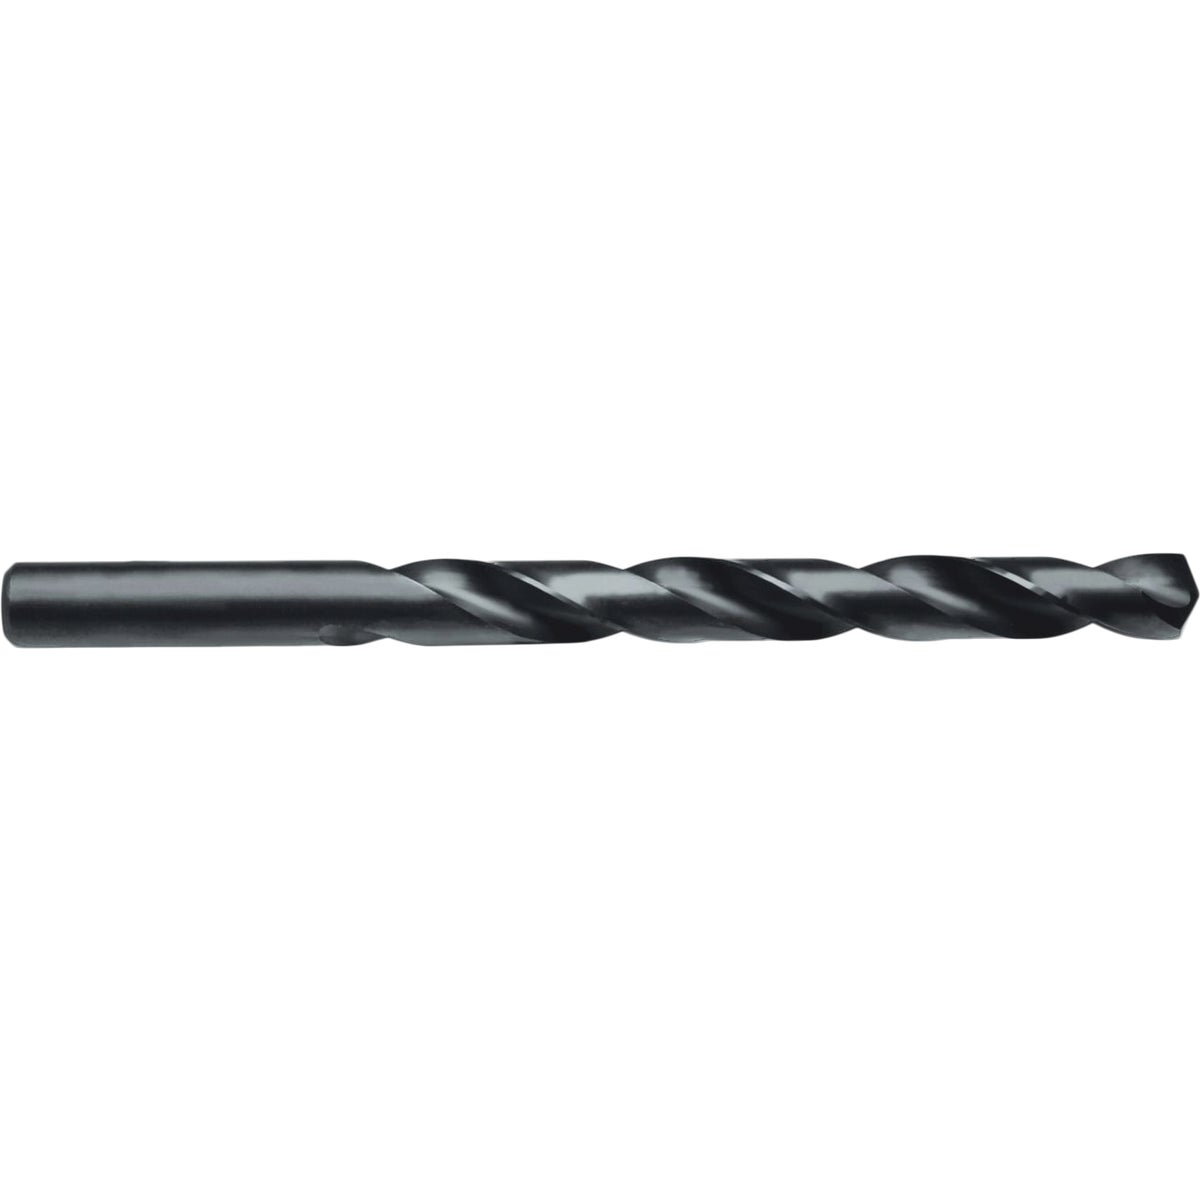 "5/16"" BLACK OXIDE BIT - DW1120 by DeWalt"